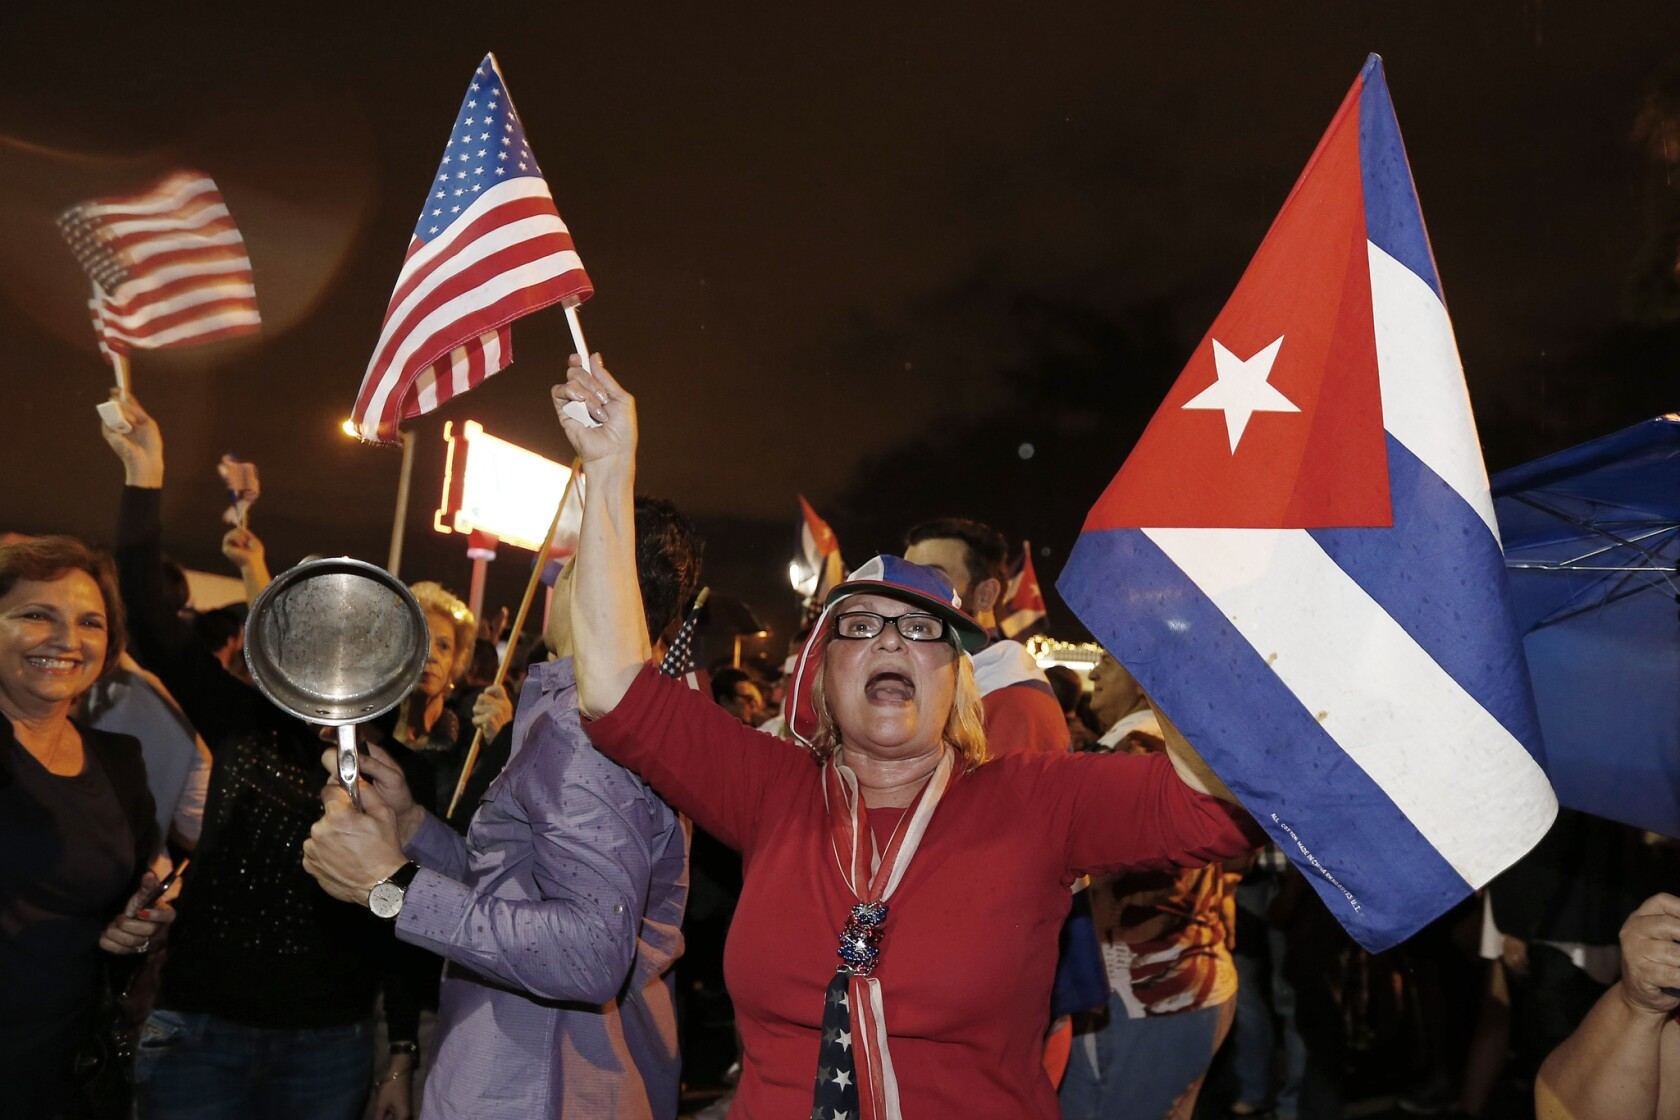 For decades, Cuban Americans have longed to return to a post-Castro Cuba. But now that Fidel is dead, many aren't so eager to go